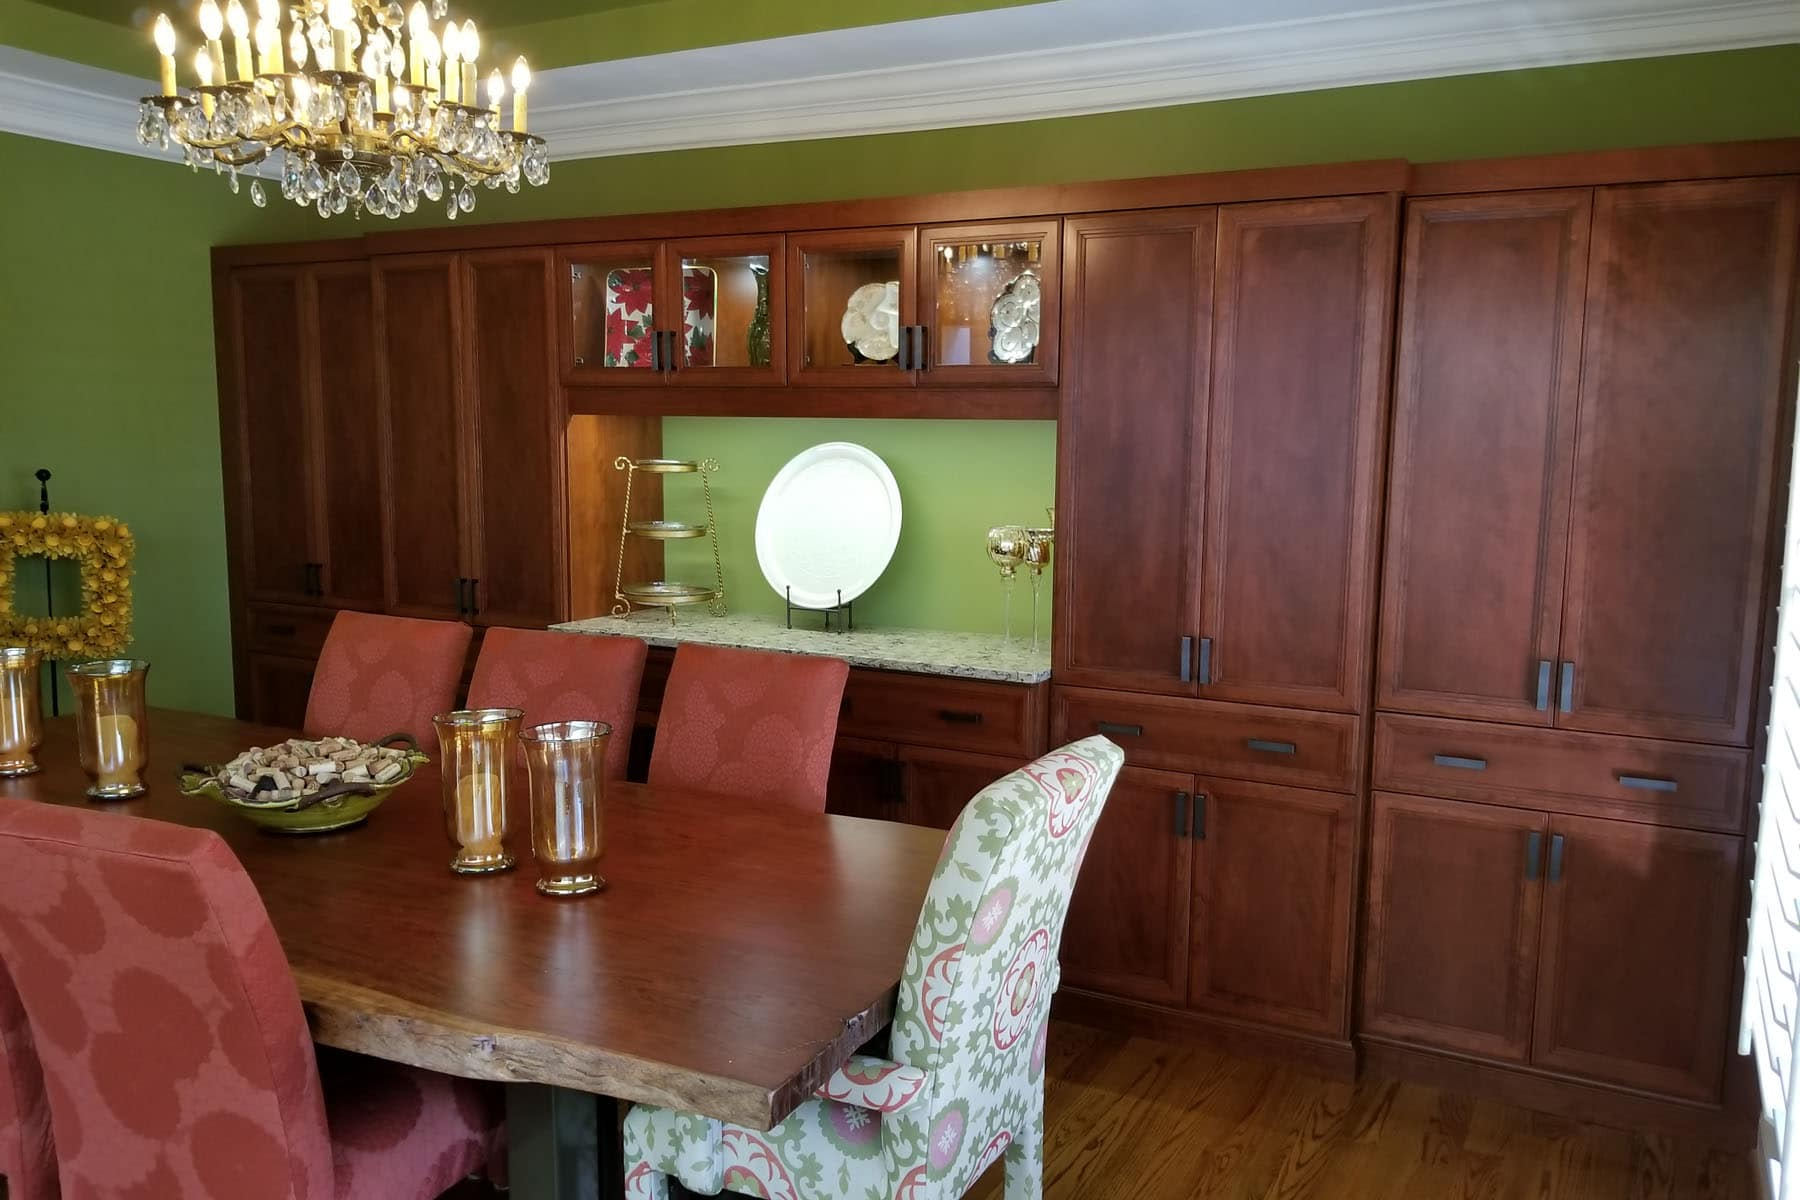 Brown wall unit in a dinning room